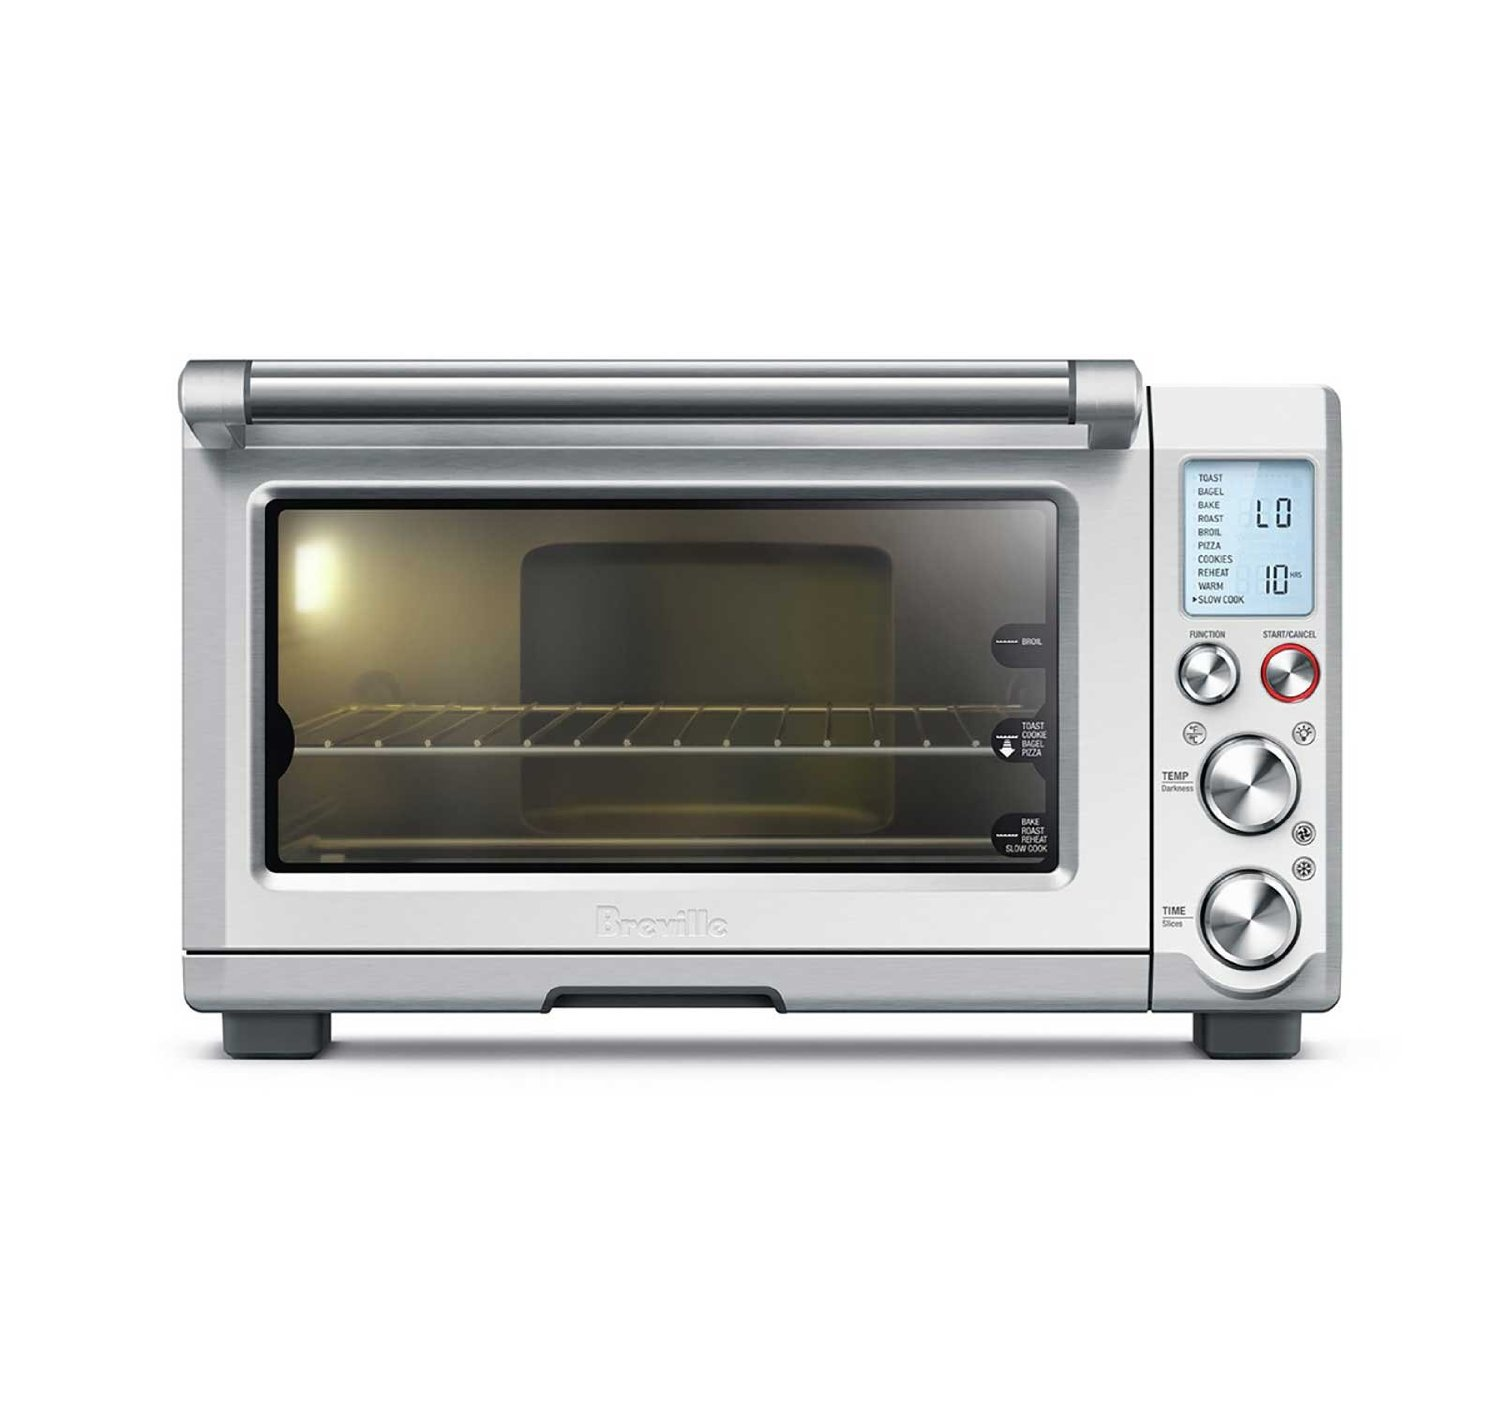 Breville Stainless Steel Countertop Oven